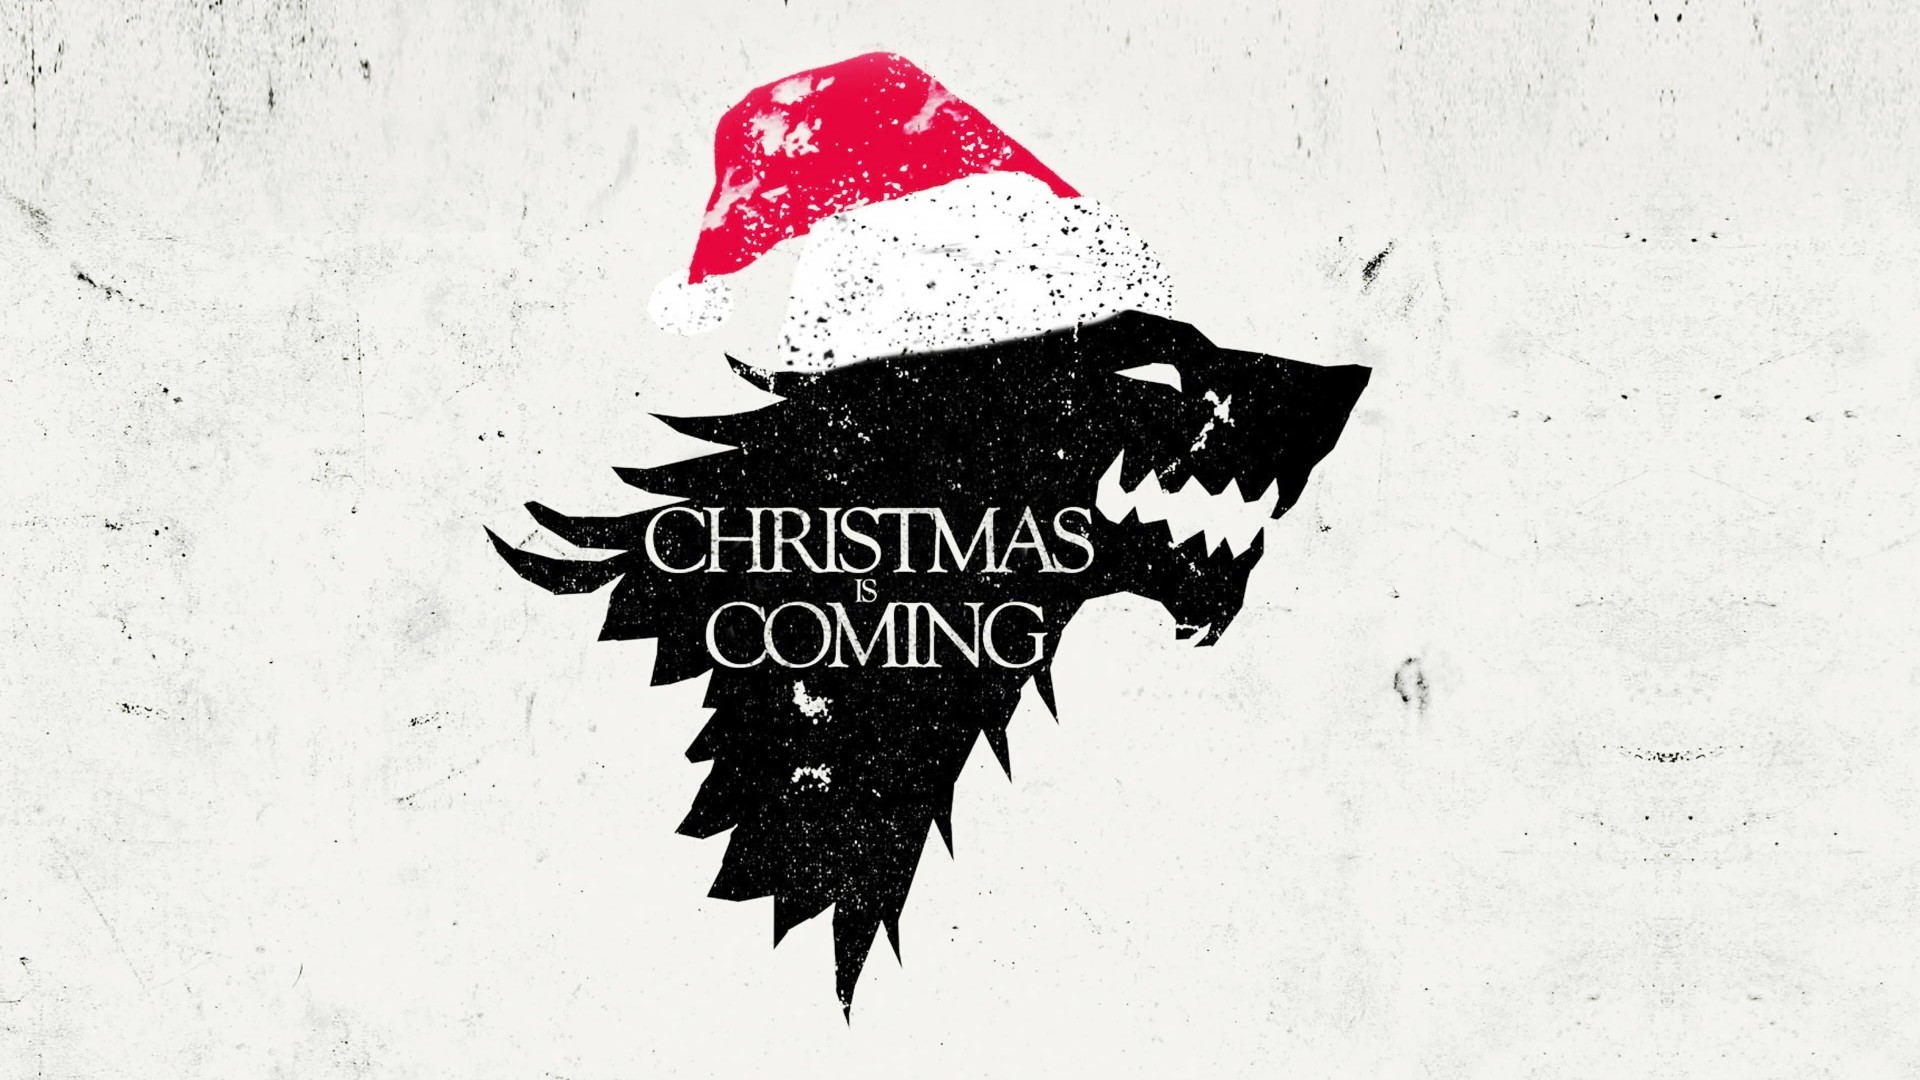 Christmas is coming wallpaper 1920x1080